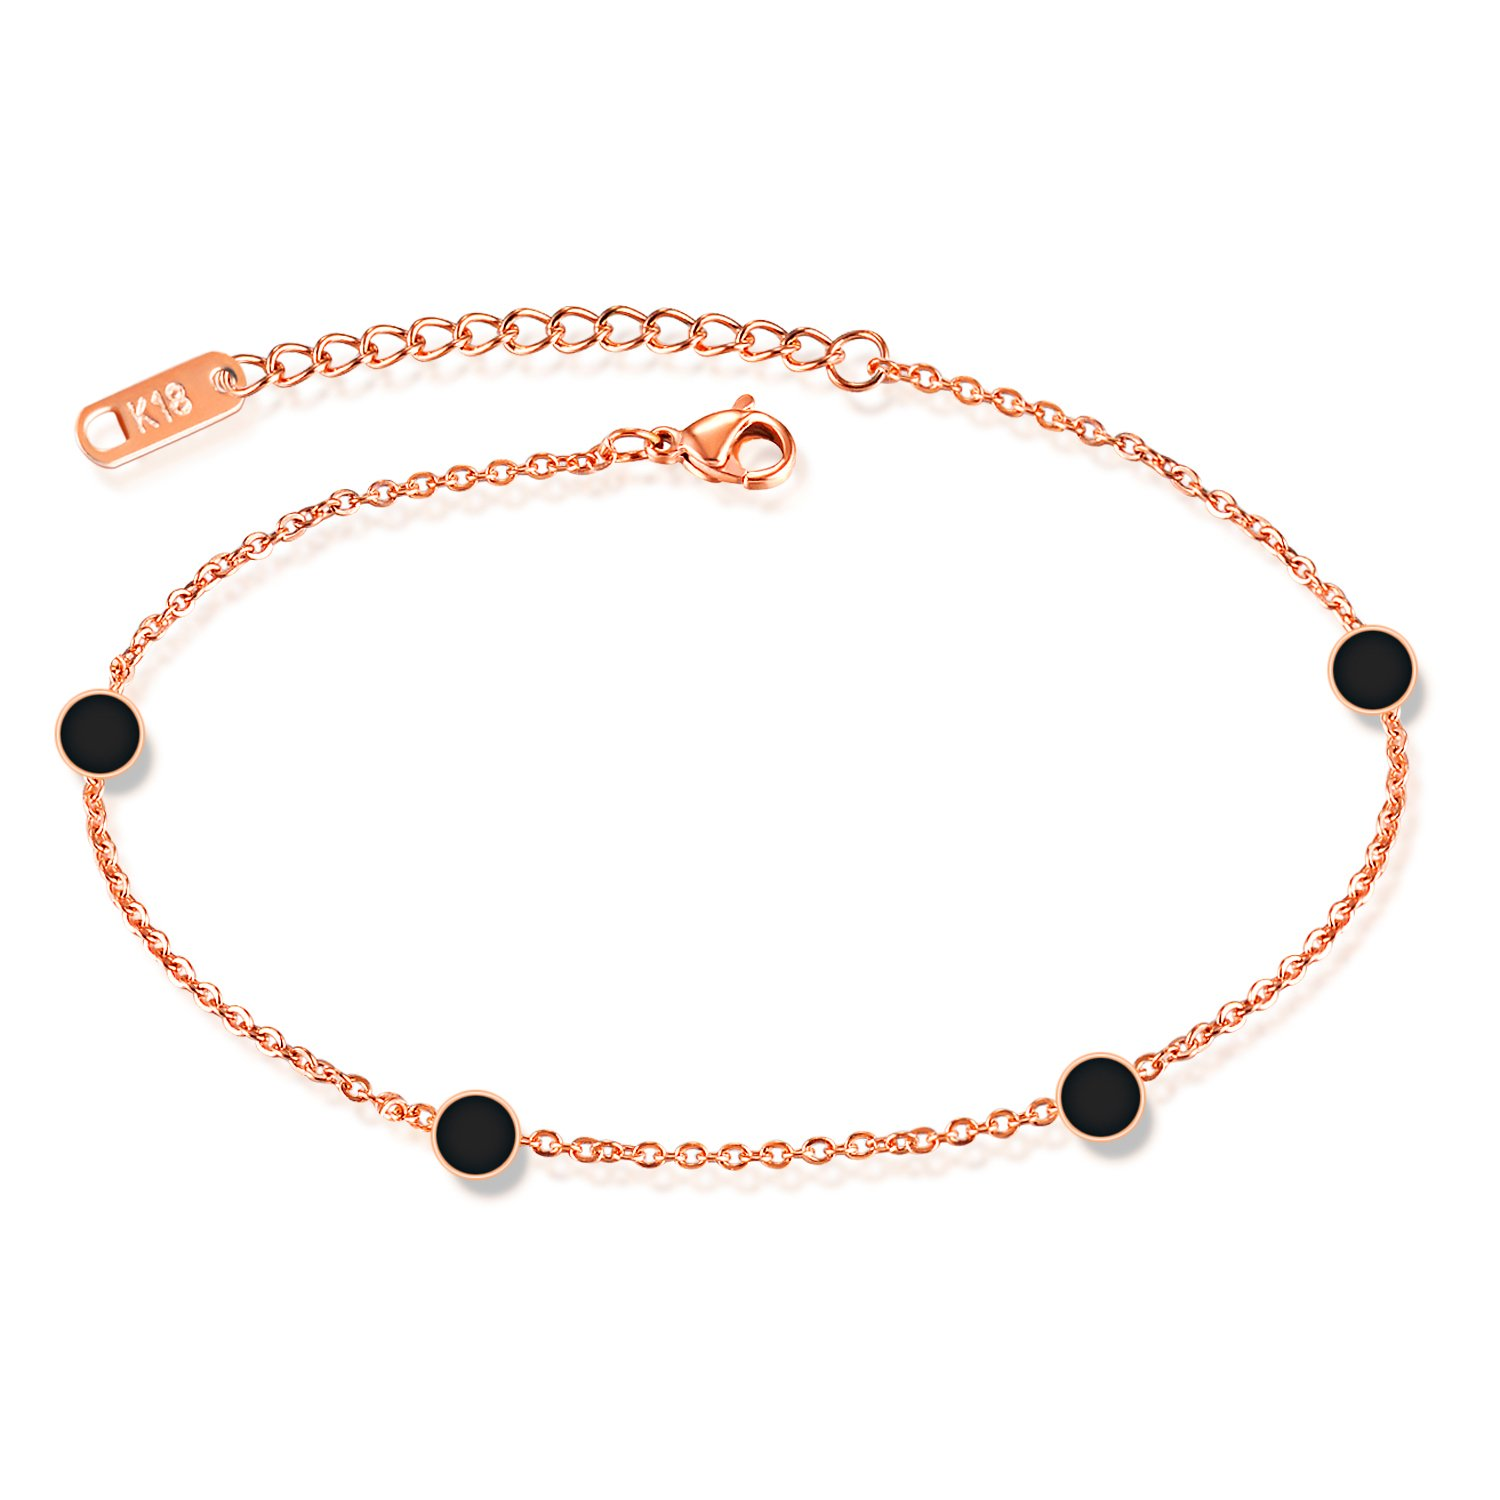 LOHOME Fashion Anklets Rose Gold Tone Black Circle Charm Foot Chain for Women L8.5+1.9""